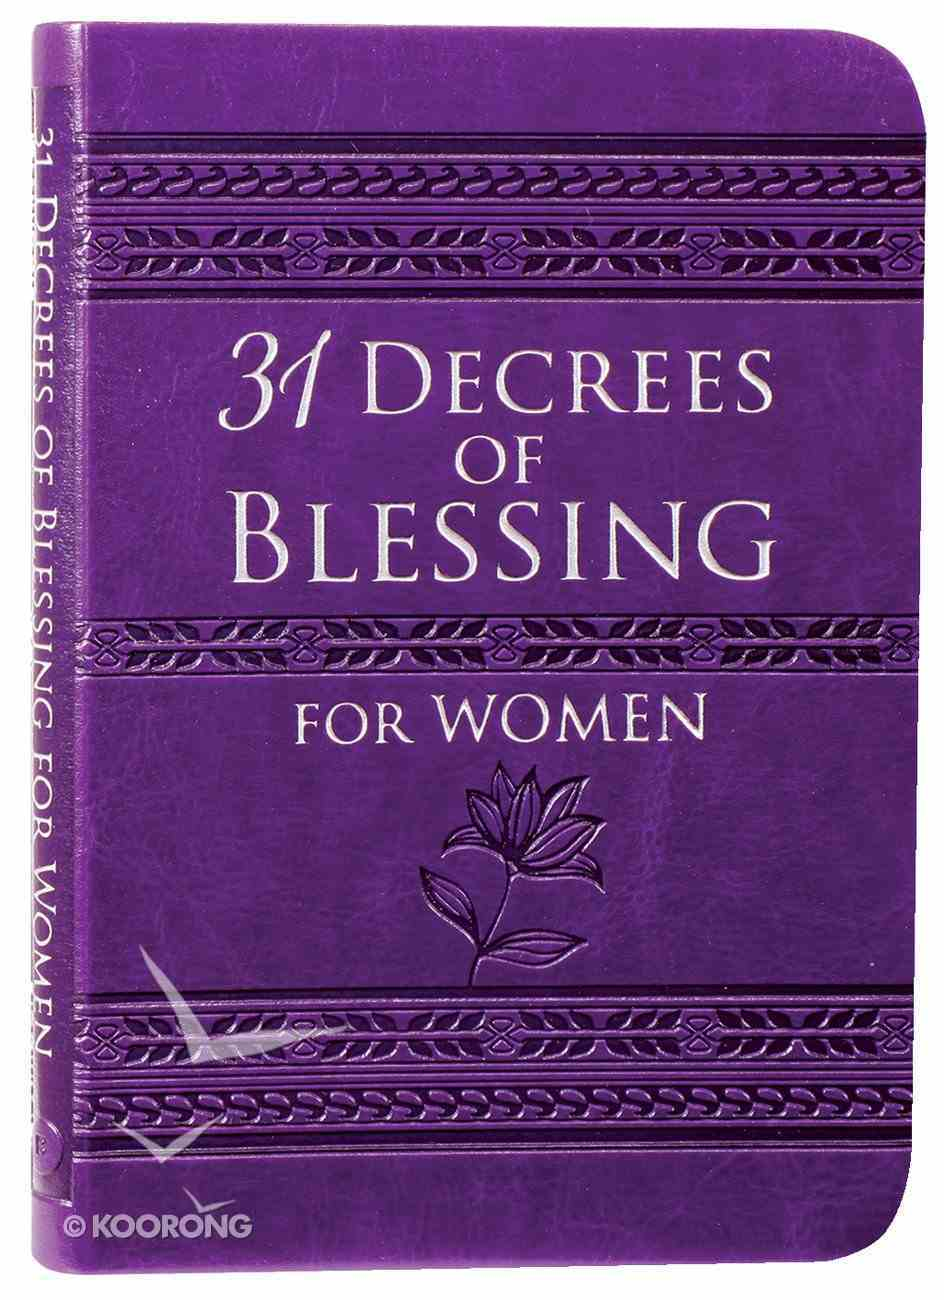 31 Decrees of Blessing For Women Imitation Leather